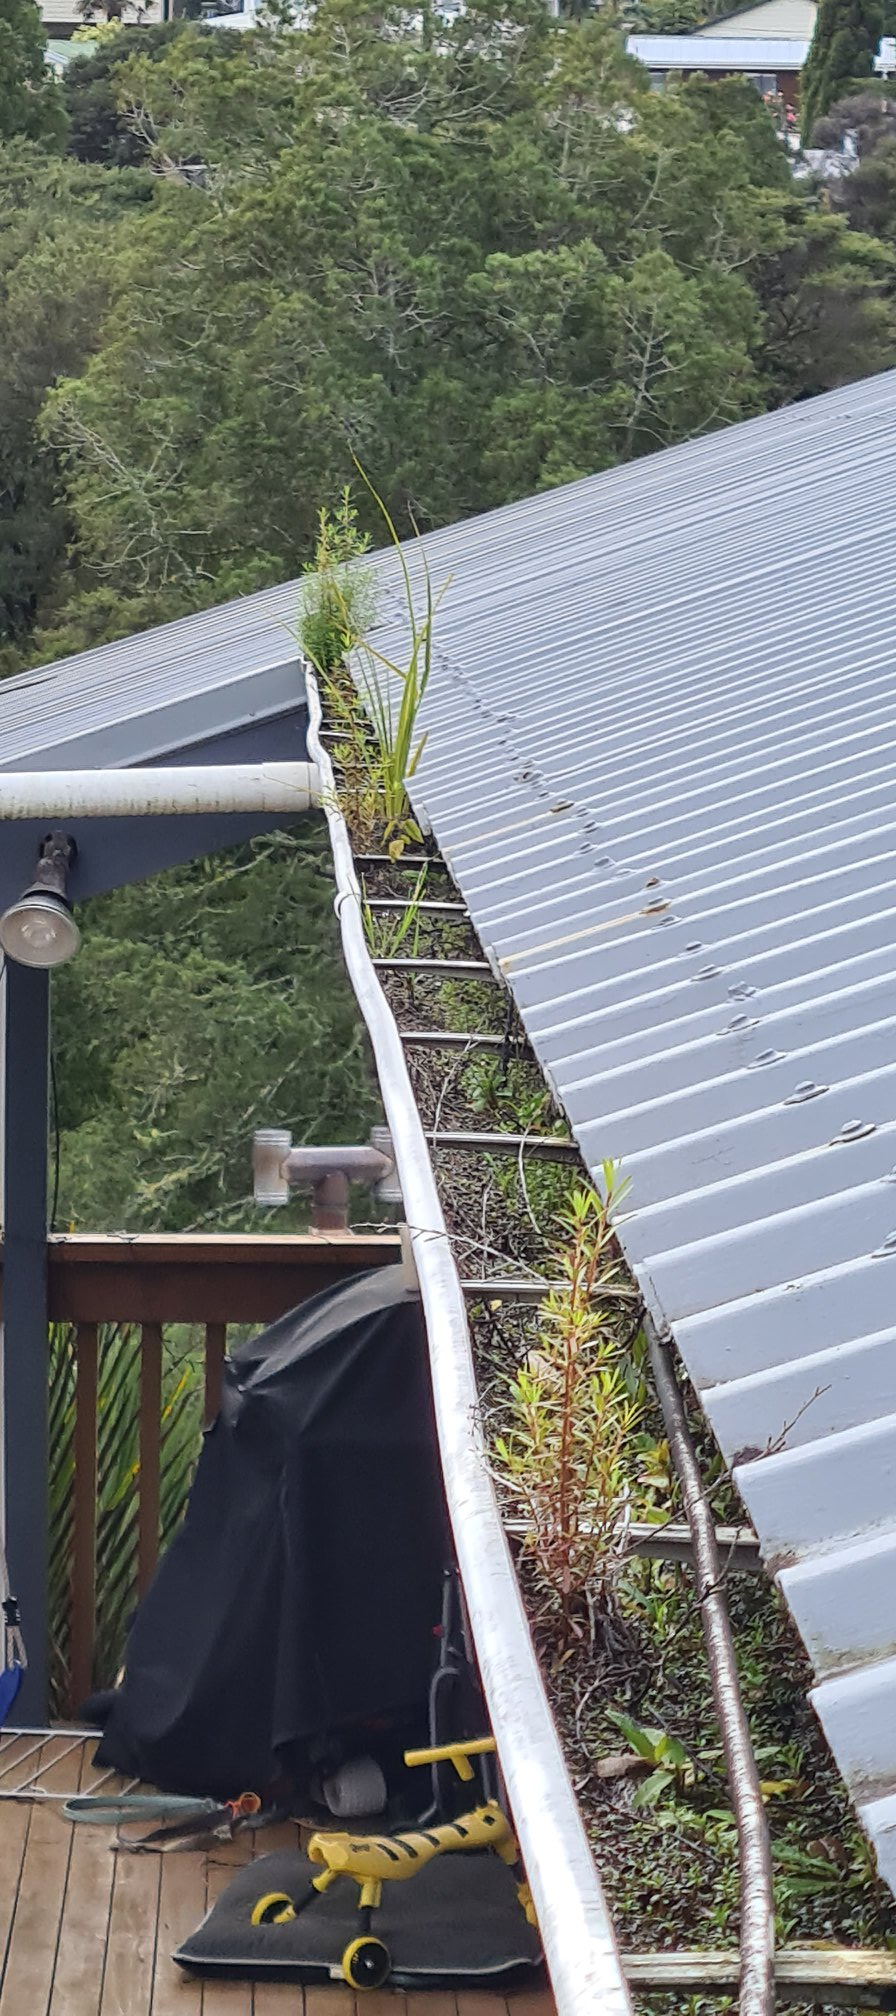 Auckland Gutter cleaning - clear blocked gutters